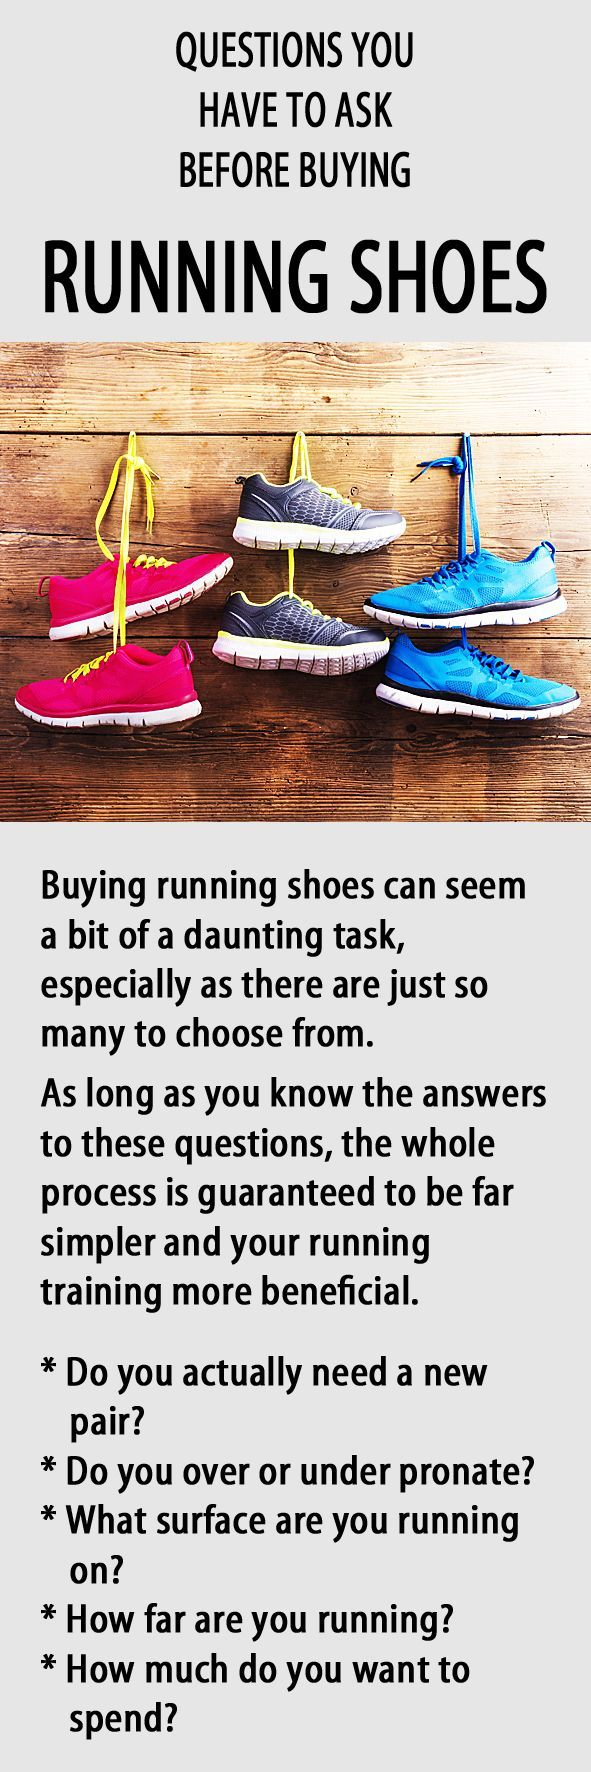 Questions you HAVE TO ask before buying running shoes. #runningshoes #running #runningtips